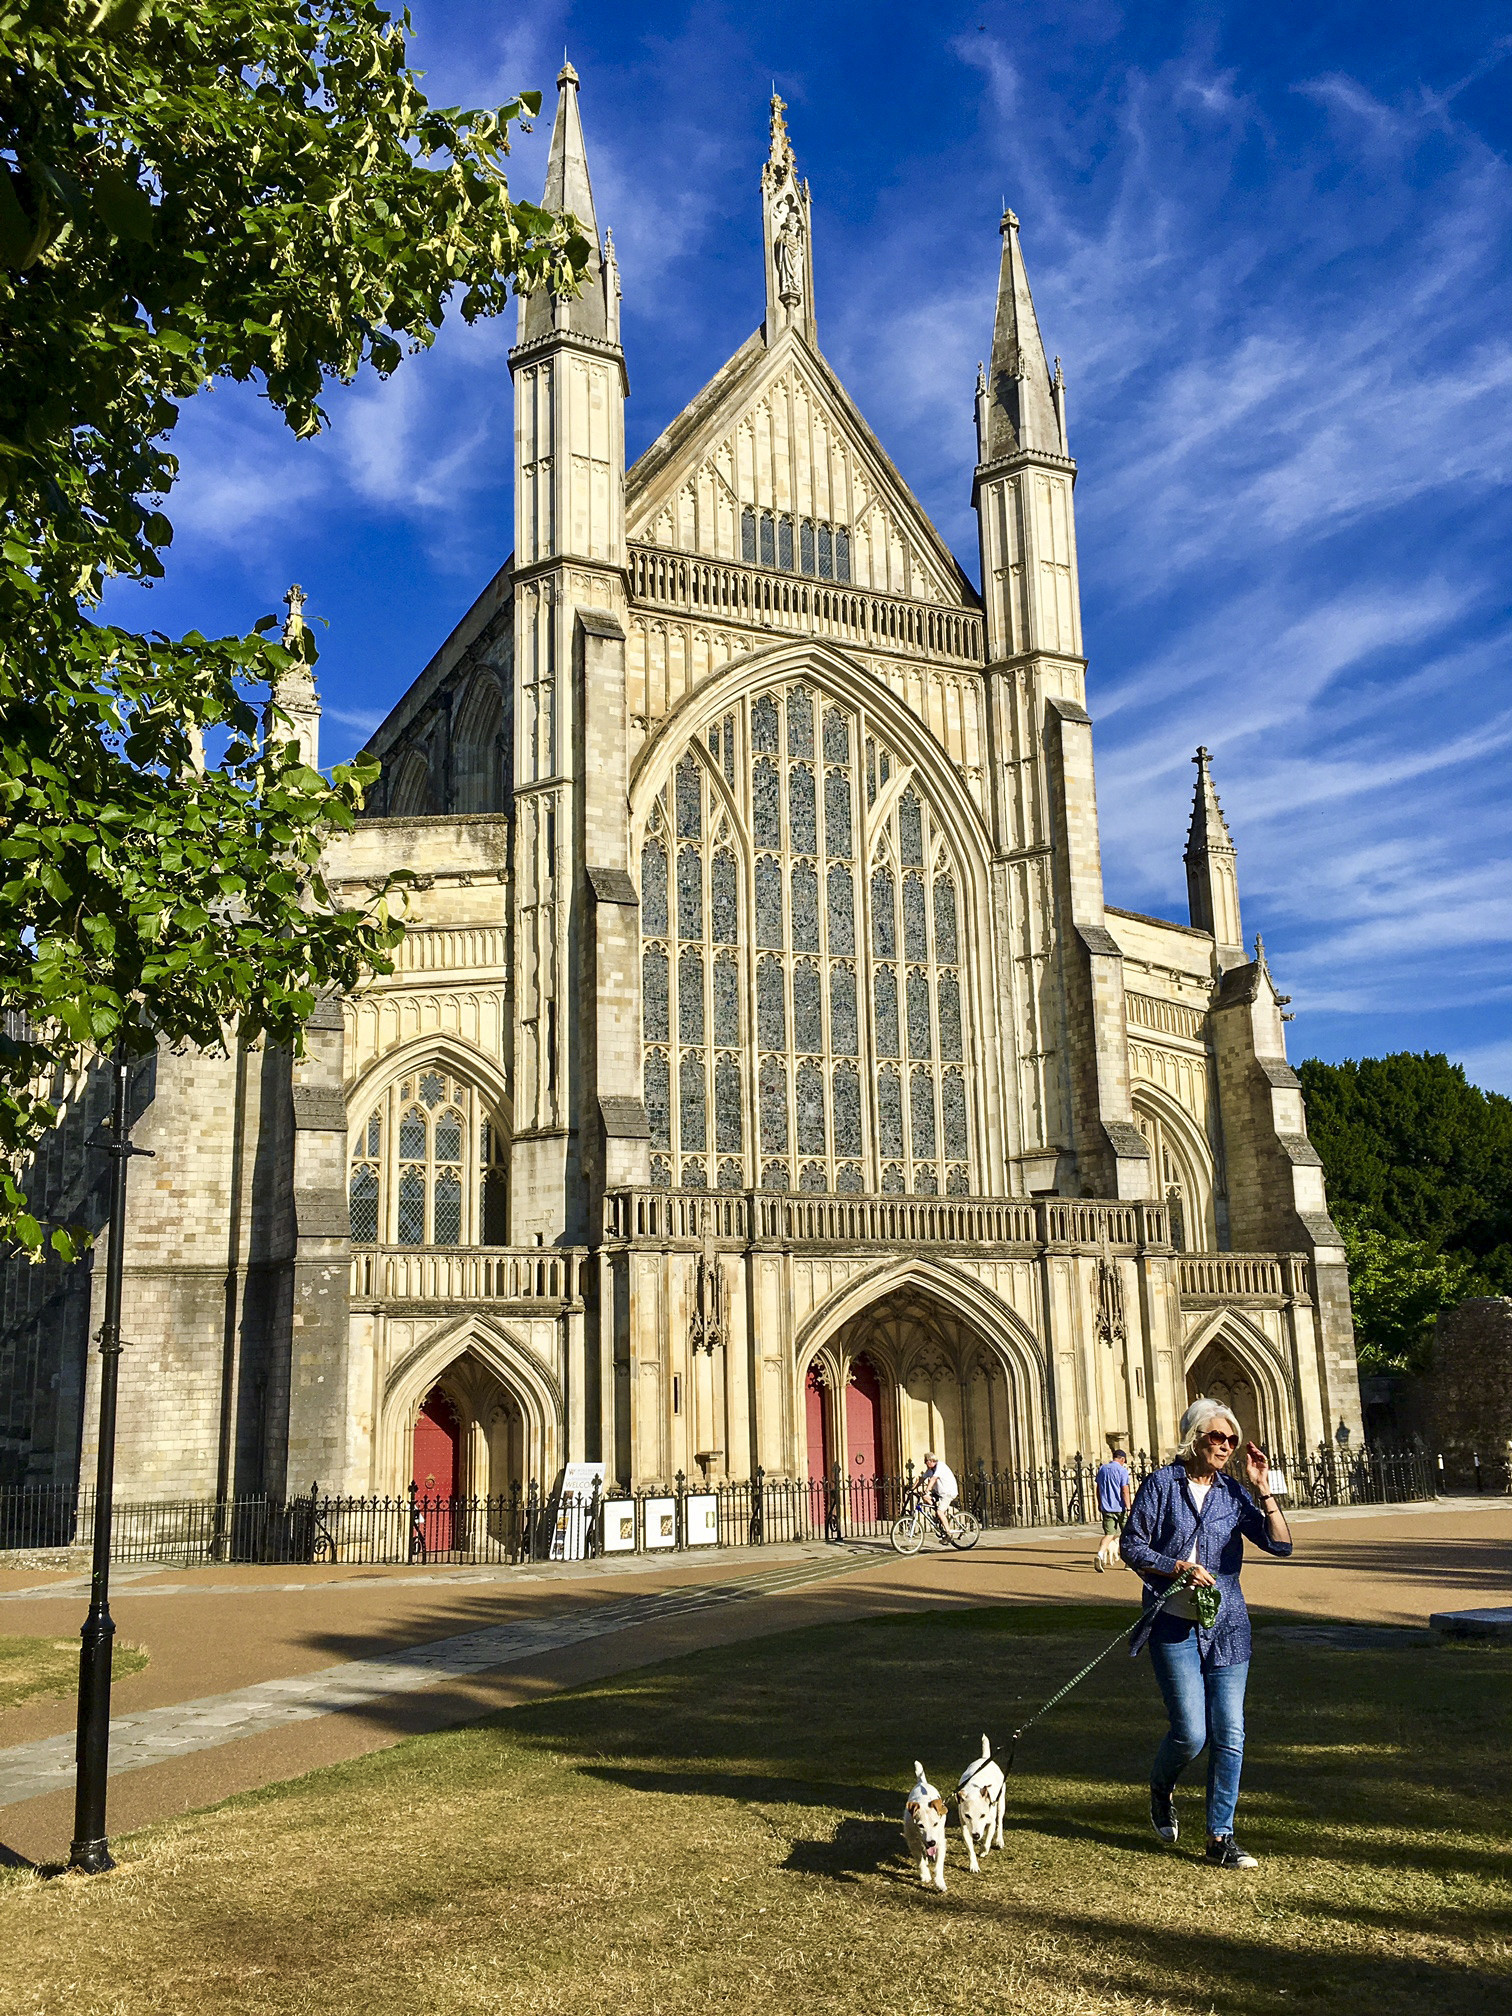 Winchester Cathedral: Jane Austen is entombed here with some of the nation's greatest heroes.